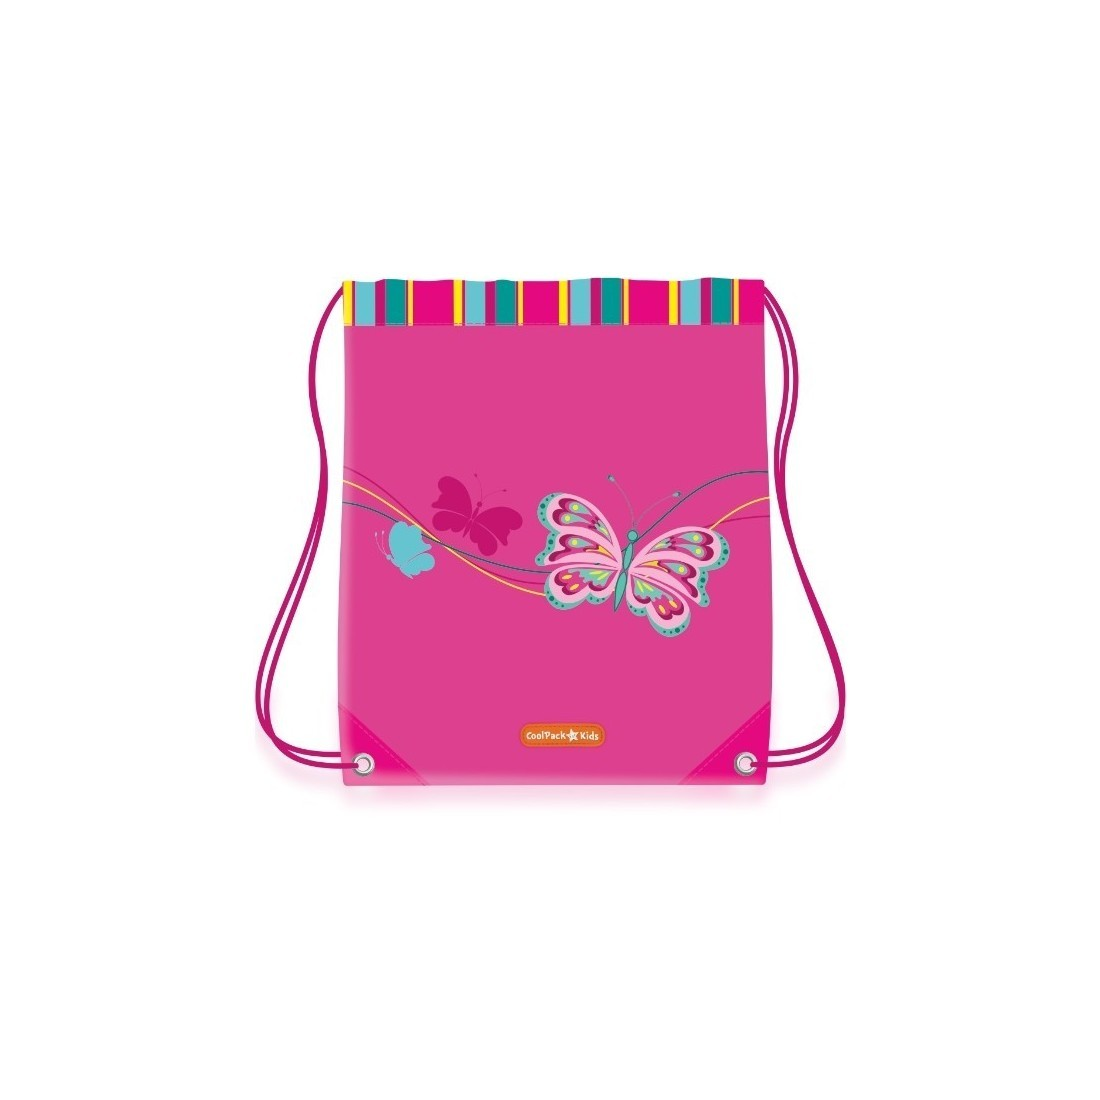 WOREK NA BUTY COOLPACK CP BUTTERFLY RÓŻOWY Z MOTYLEM - plecak-tornister.pl